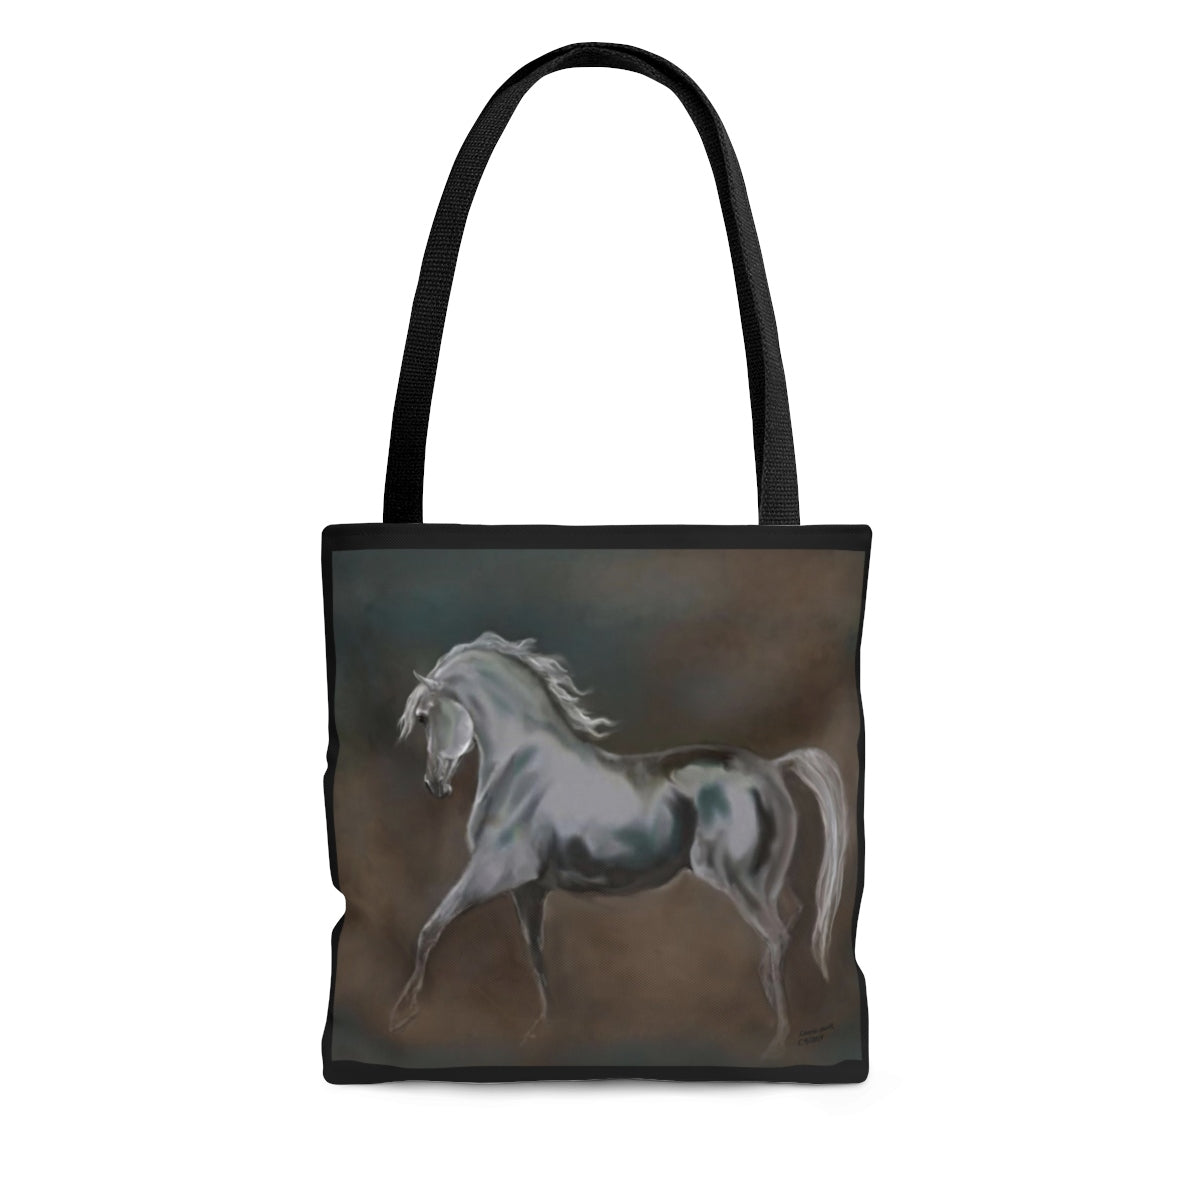 Arabian Horse print Tote Bag 3 sizes Original Horse art gift for horse person